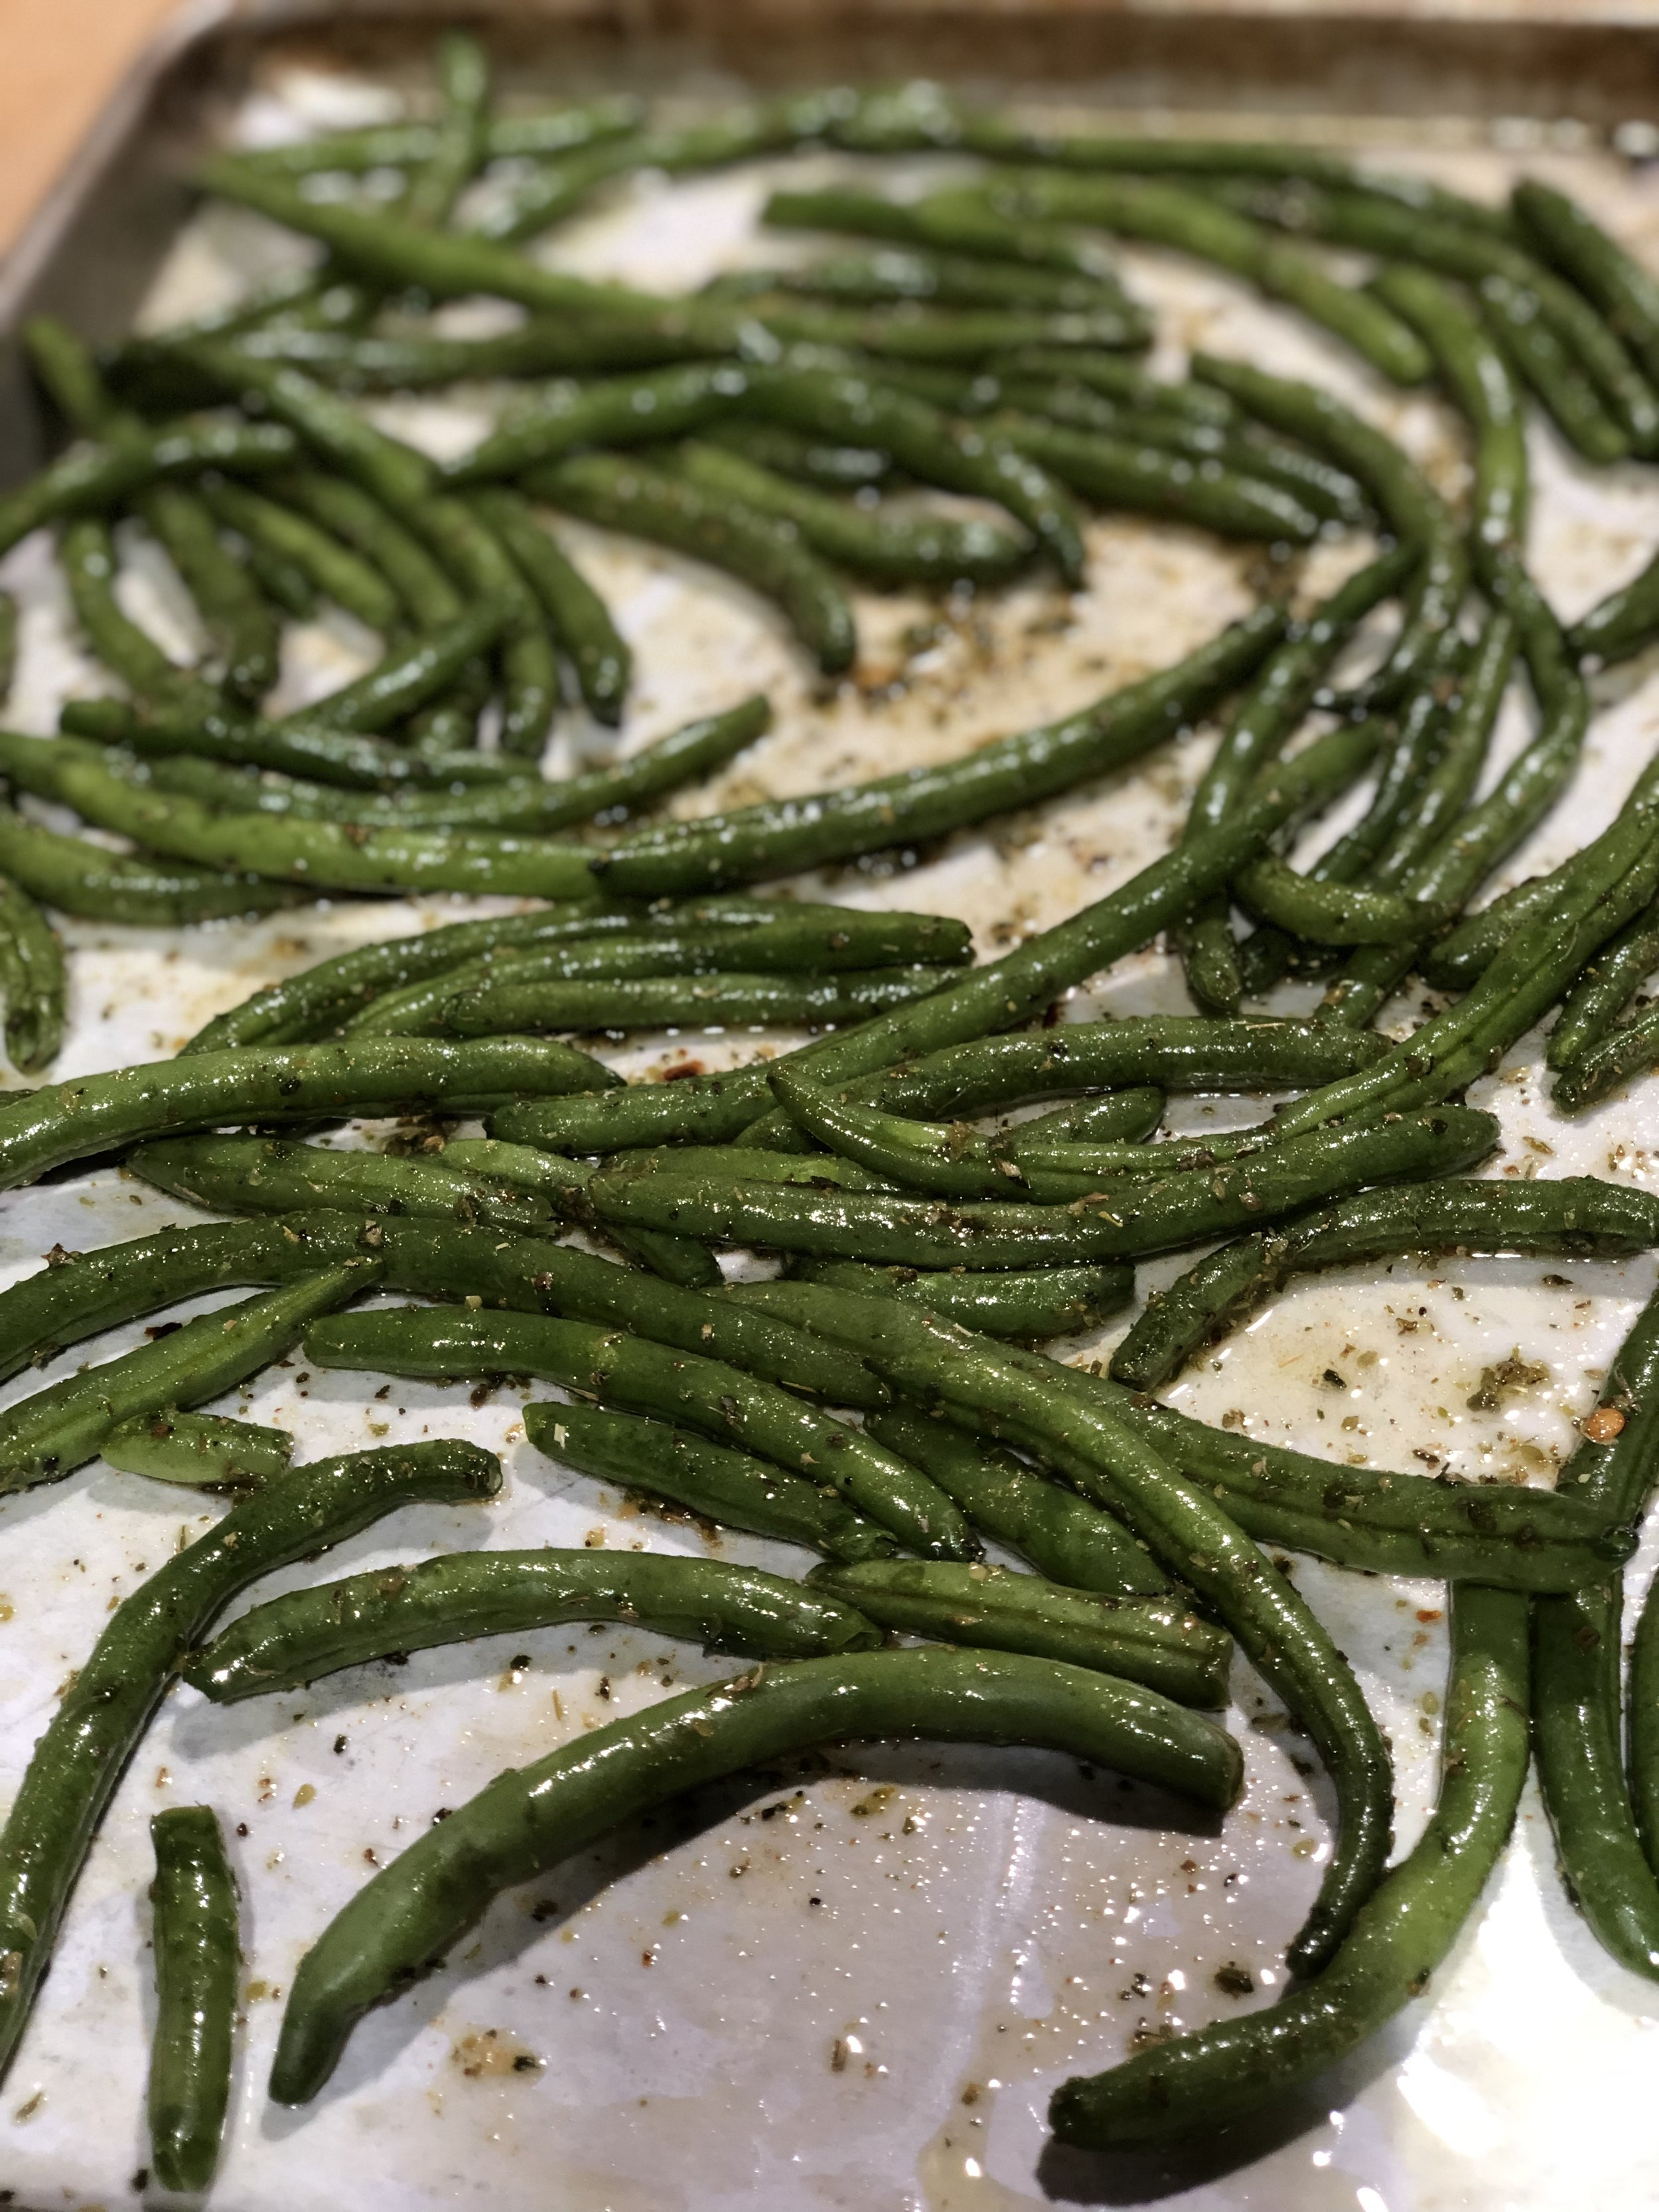 I highly recommend roasting green beans